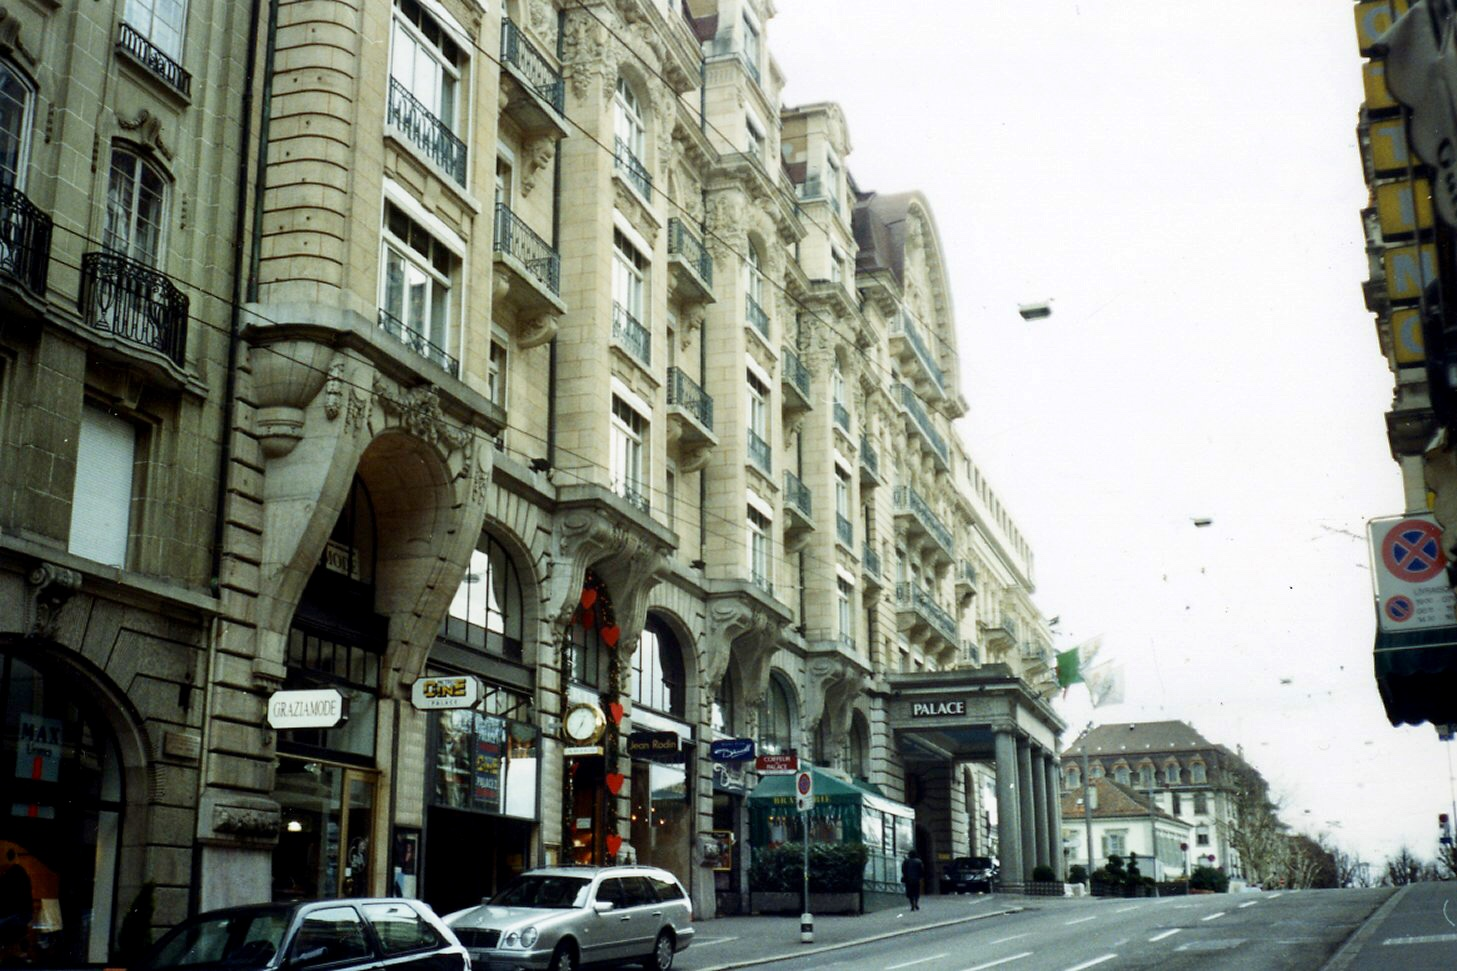 The Lausanne Palace Hotel